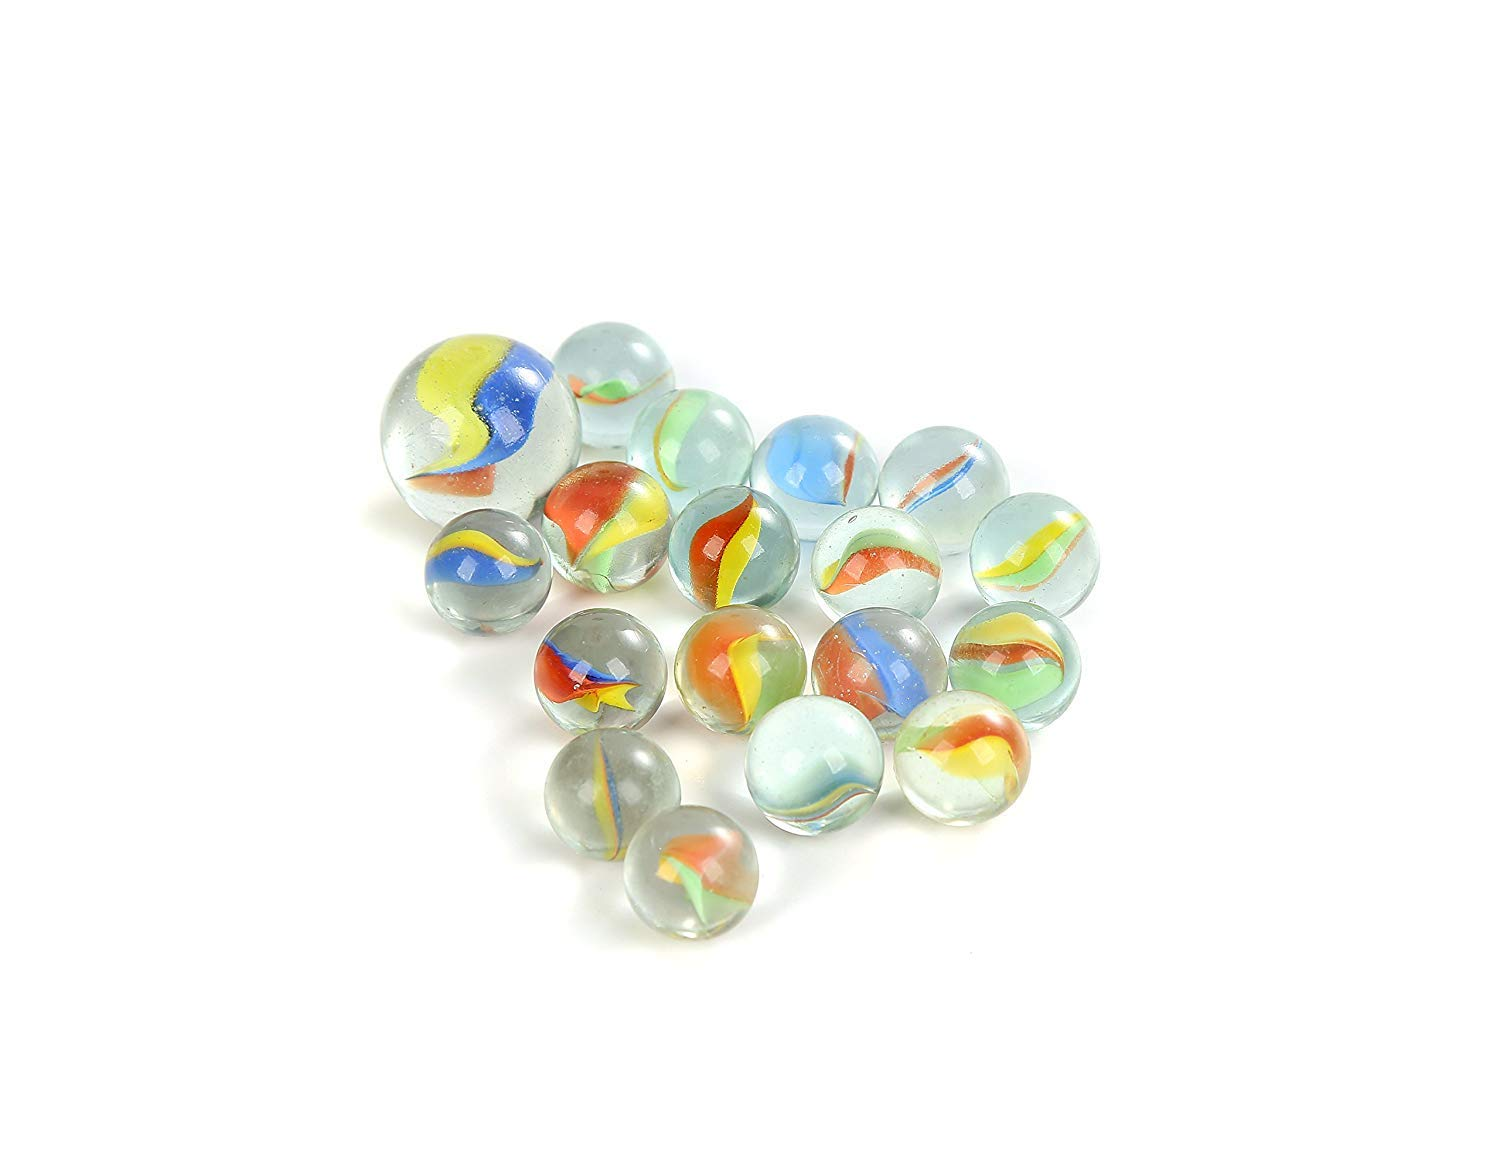 Fun Central BC811 200 Pcs 0.65 inches Glass Marbles Fun Marble Toys Entertainment Games Novelty Toys Bulk Marble Games 2 Packs 100 Pcs